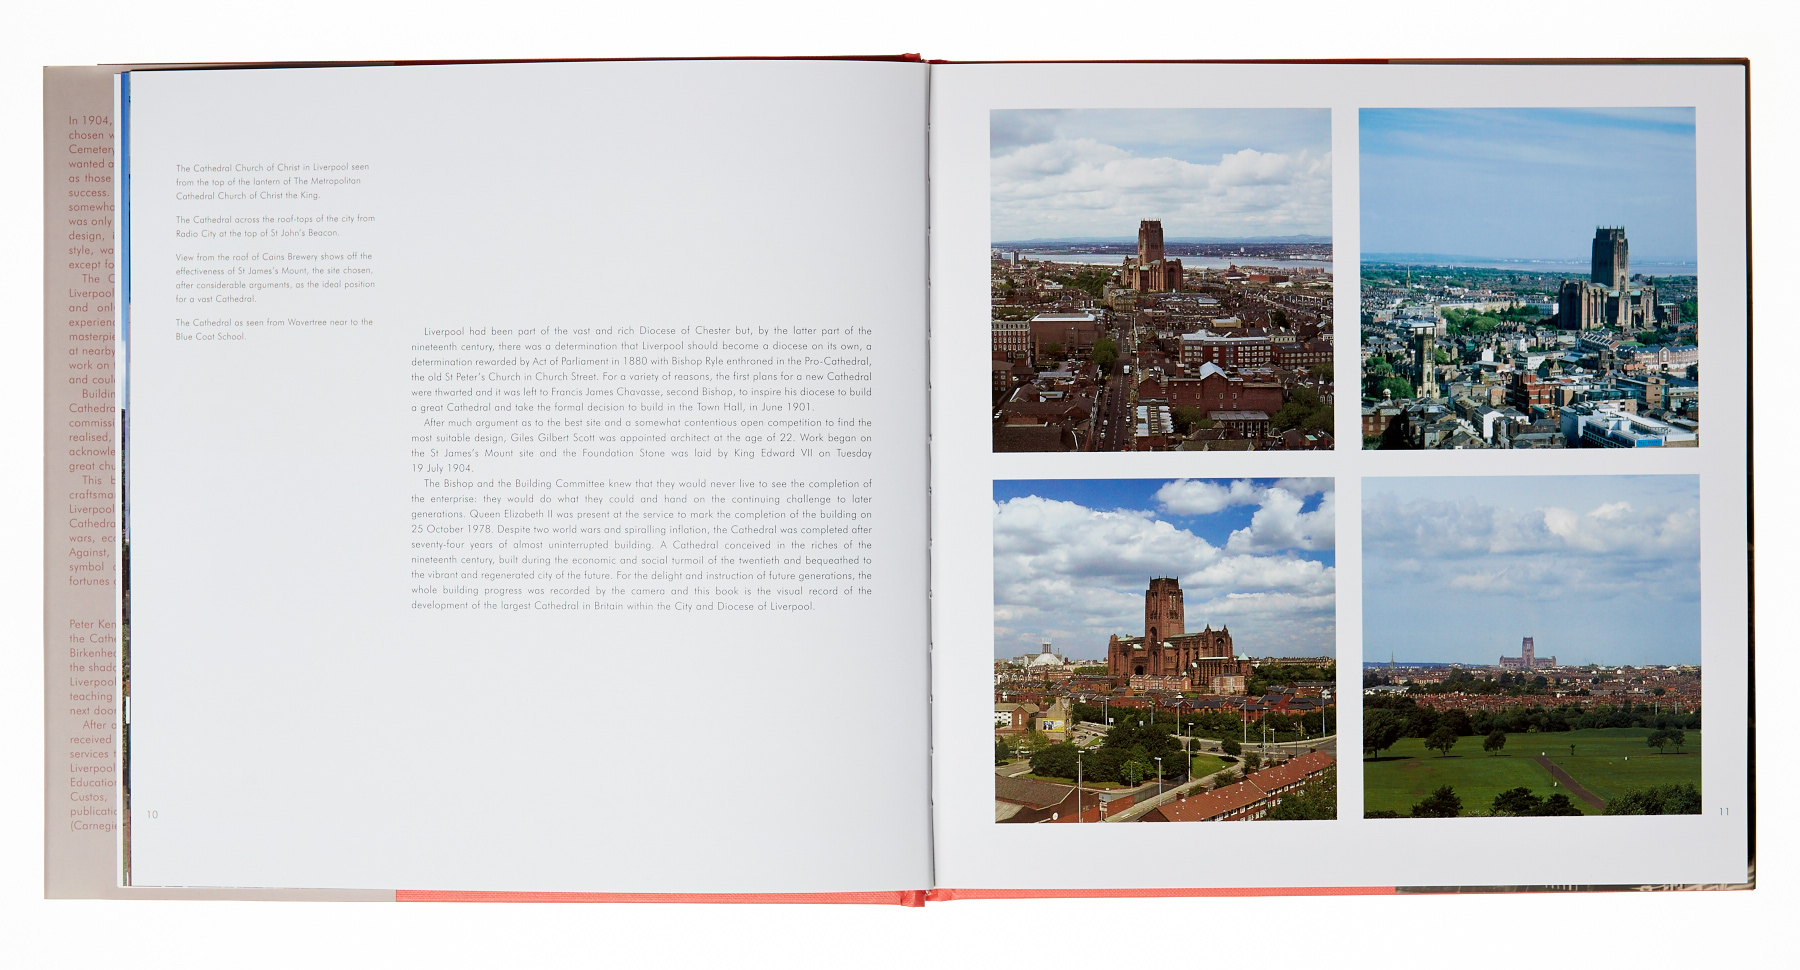 liverpool-cathedral-book-page-10.jpg